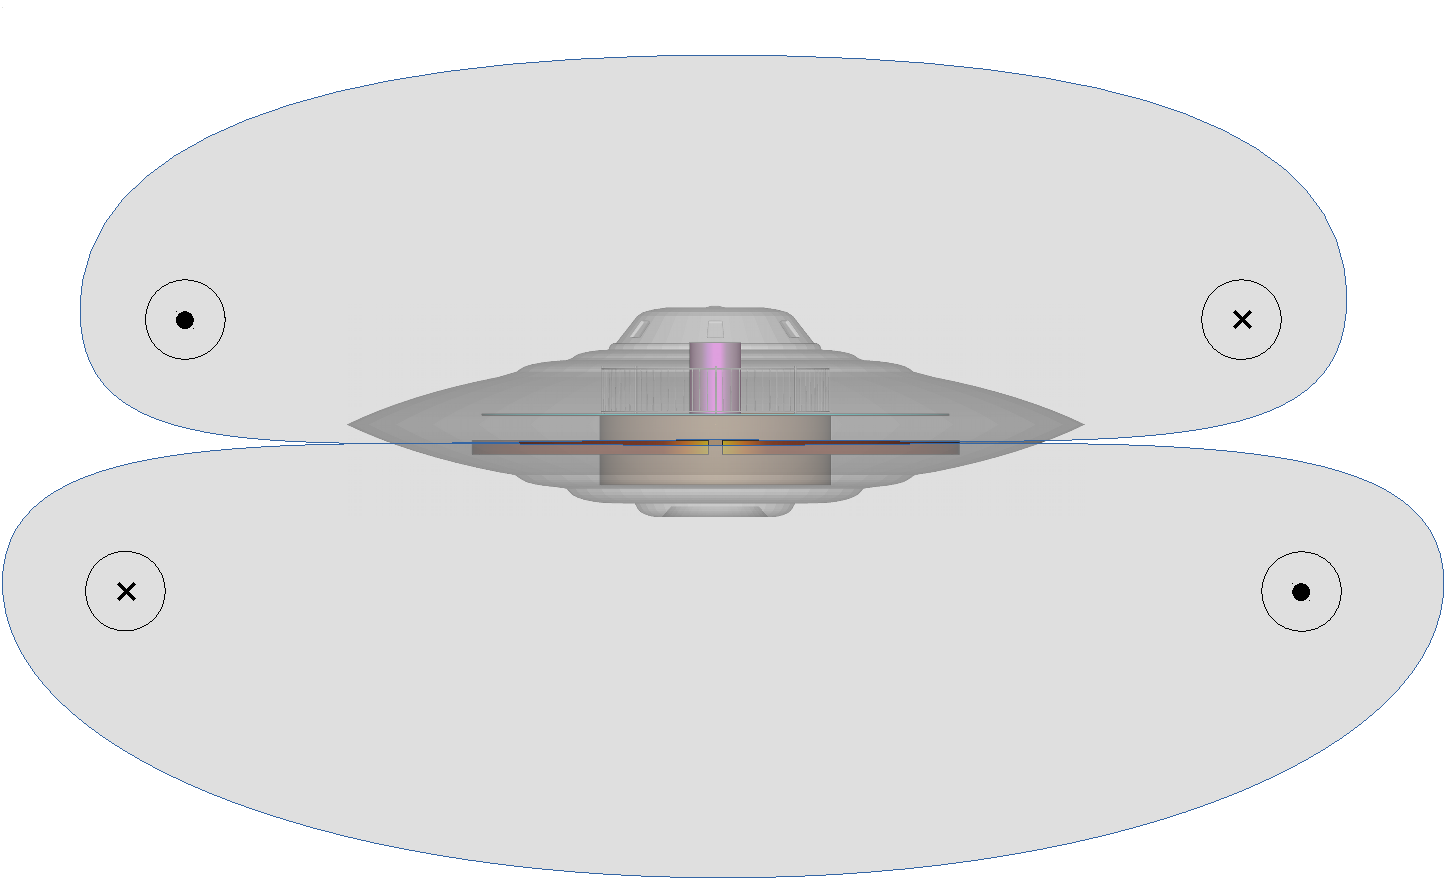 magvid-saucer-travelling-upwards.png